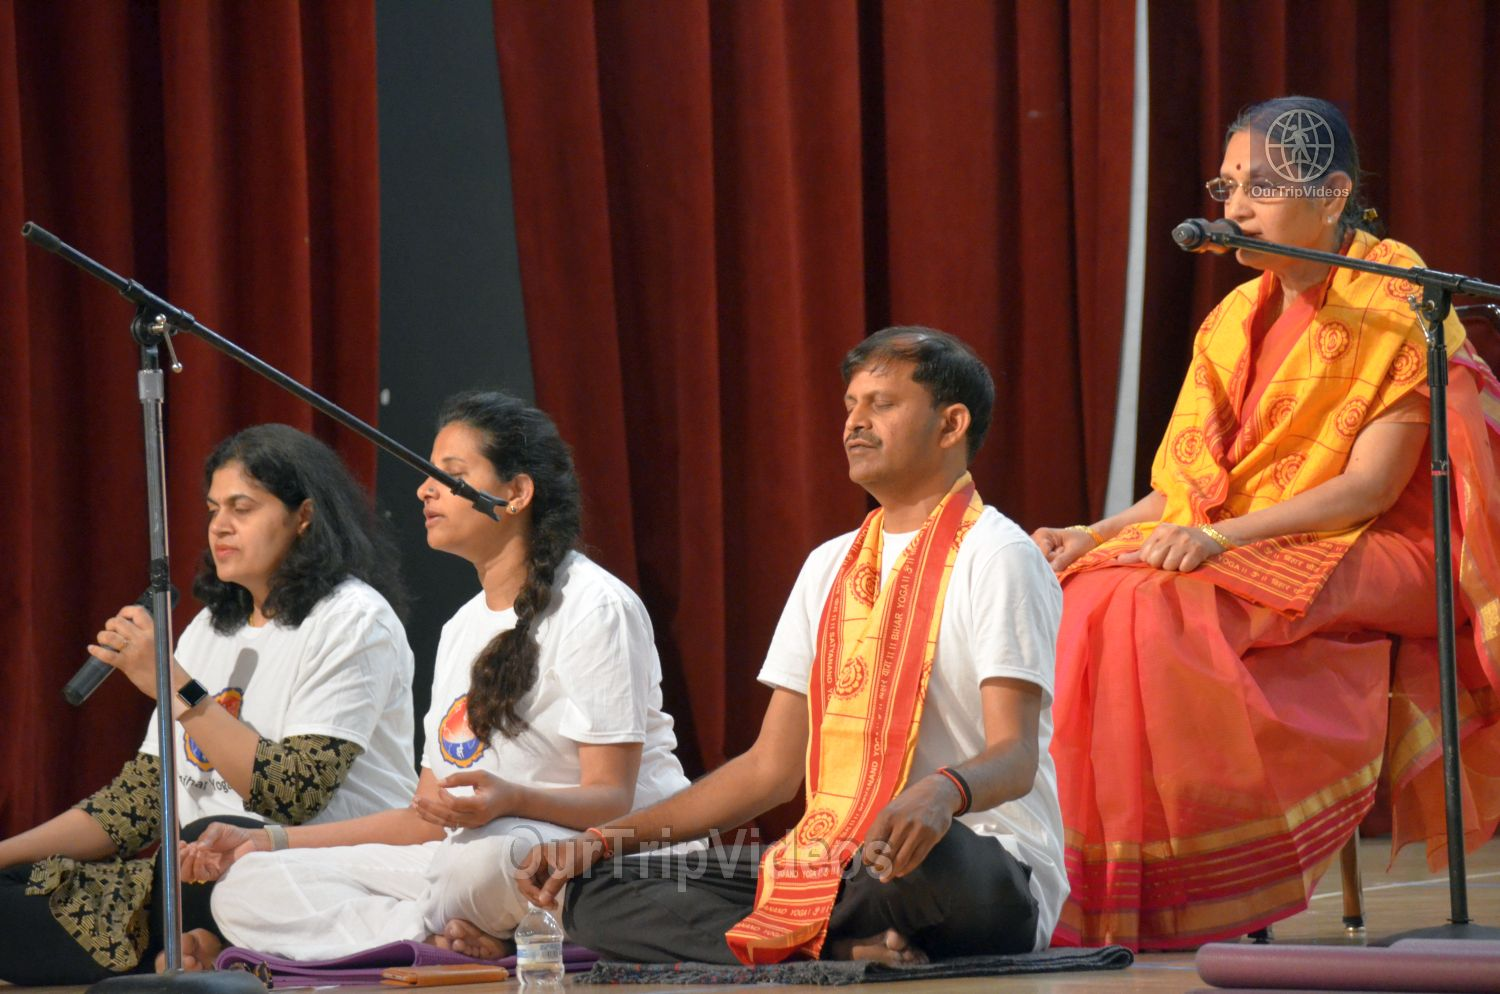 International Yoga Day at ICC, Milpitas, CA, USA - Picture 27 of 50